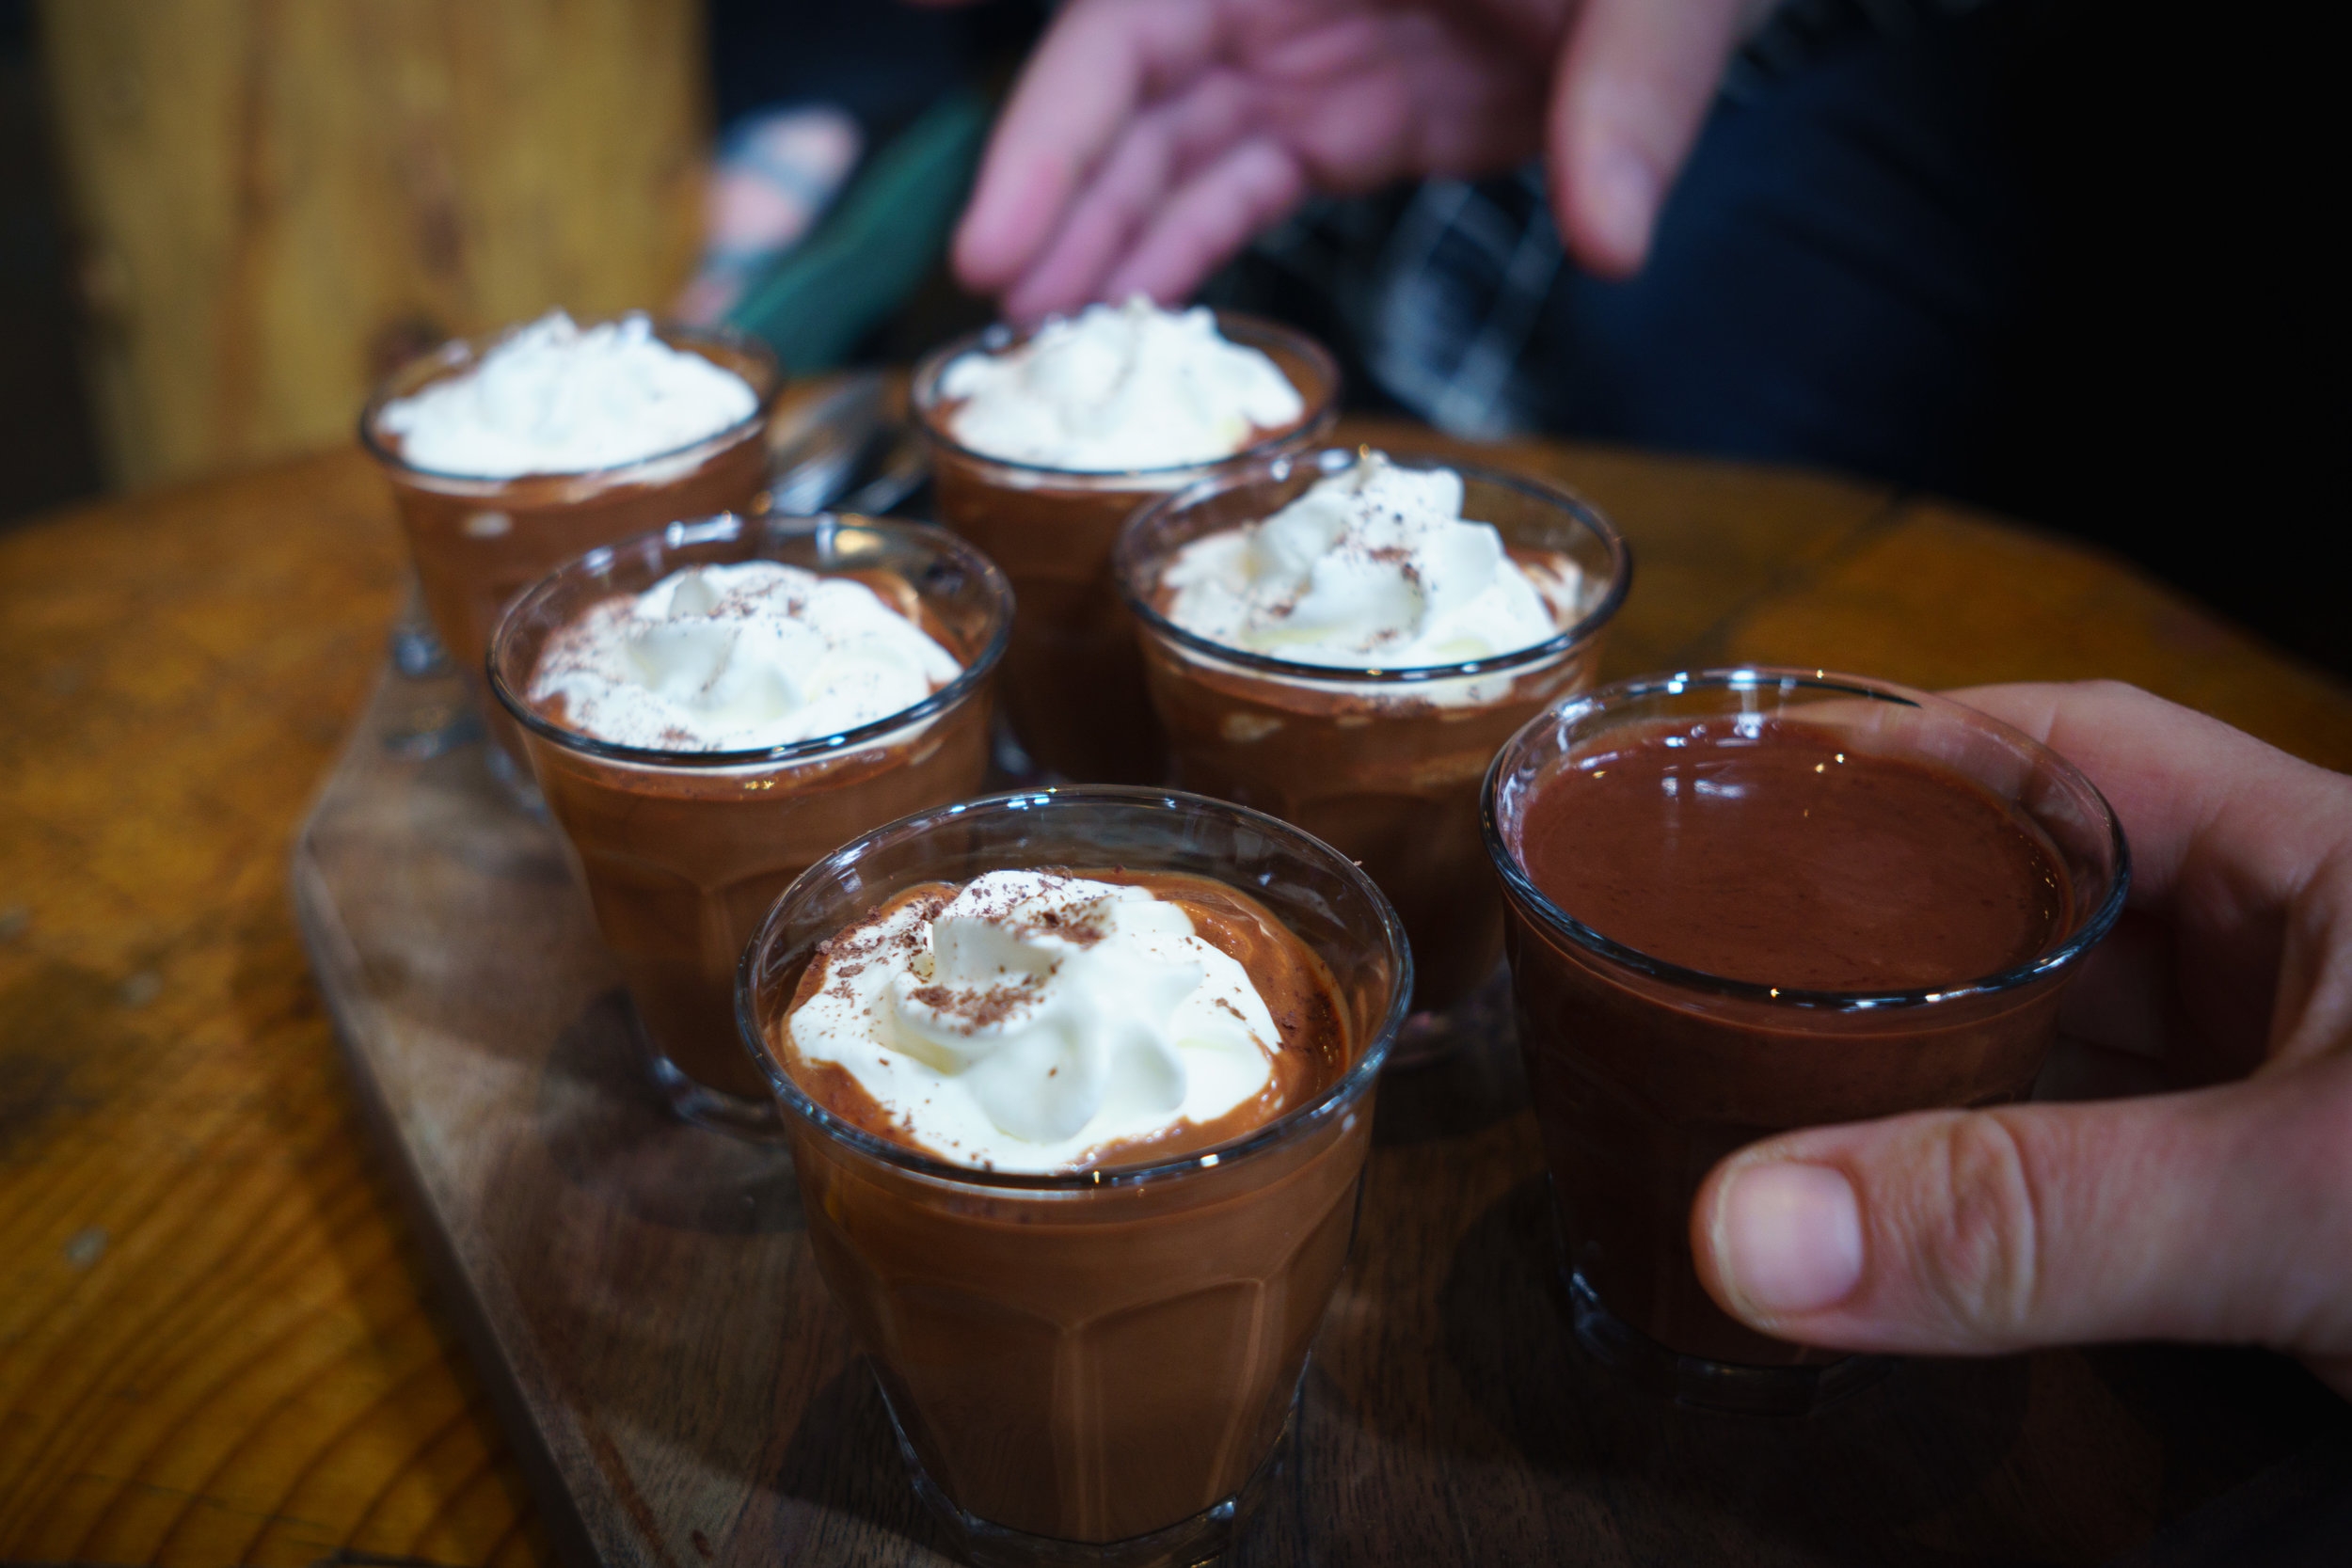 Book one of our Chocolate Pursuit Walking Tours! Find out more in our Tours section!